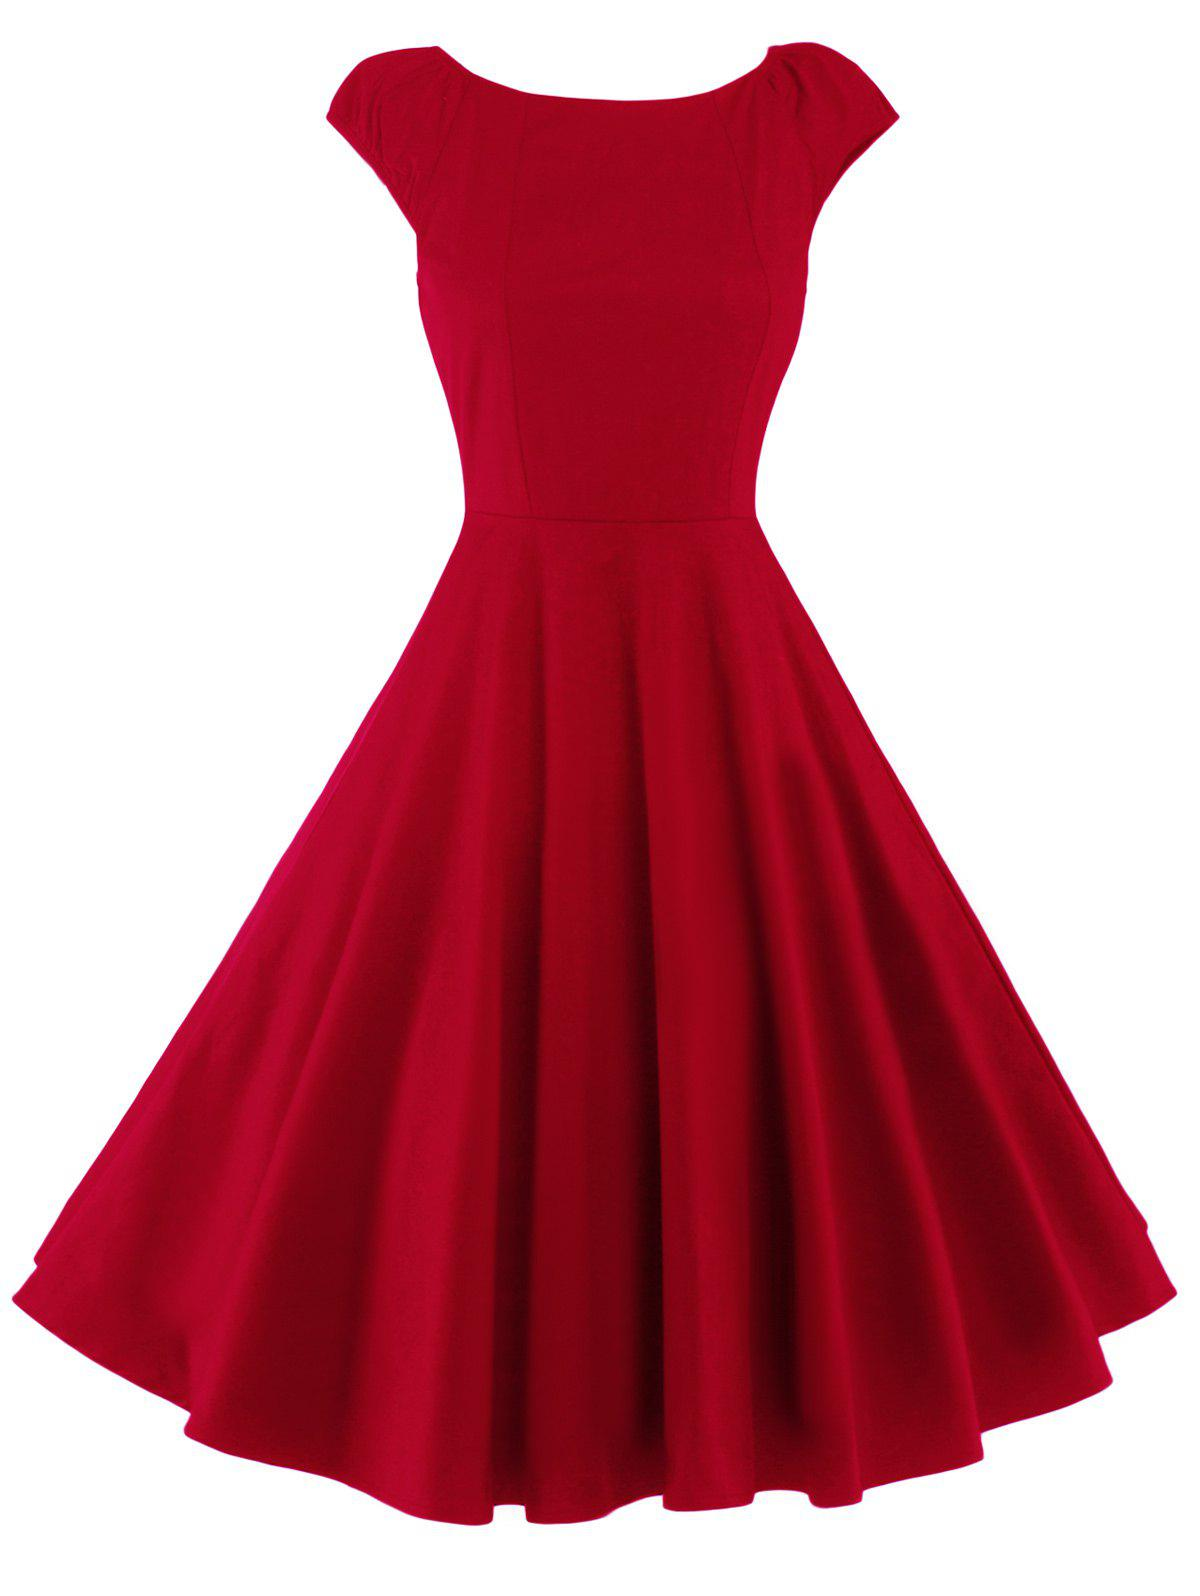 A Line Puffer Cap Sleep Plain Prom DressWOMEN<br><br>Size: XL; Color: RED; Style: Vintage; Material: Cotton; Silhouette: A-Line; Dresses Length: Knee-Length; Neckline: Round Collar; Sleeve Length: Short Sleeves; Pattern Type: Solid; With Belt: No; Season: Summer; Weight: 0.320kg; Package Contents: 1 x Dress;